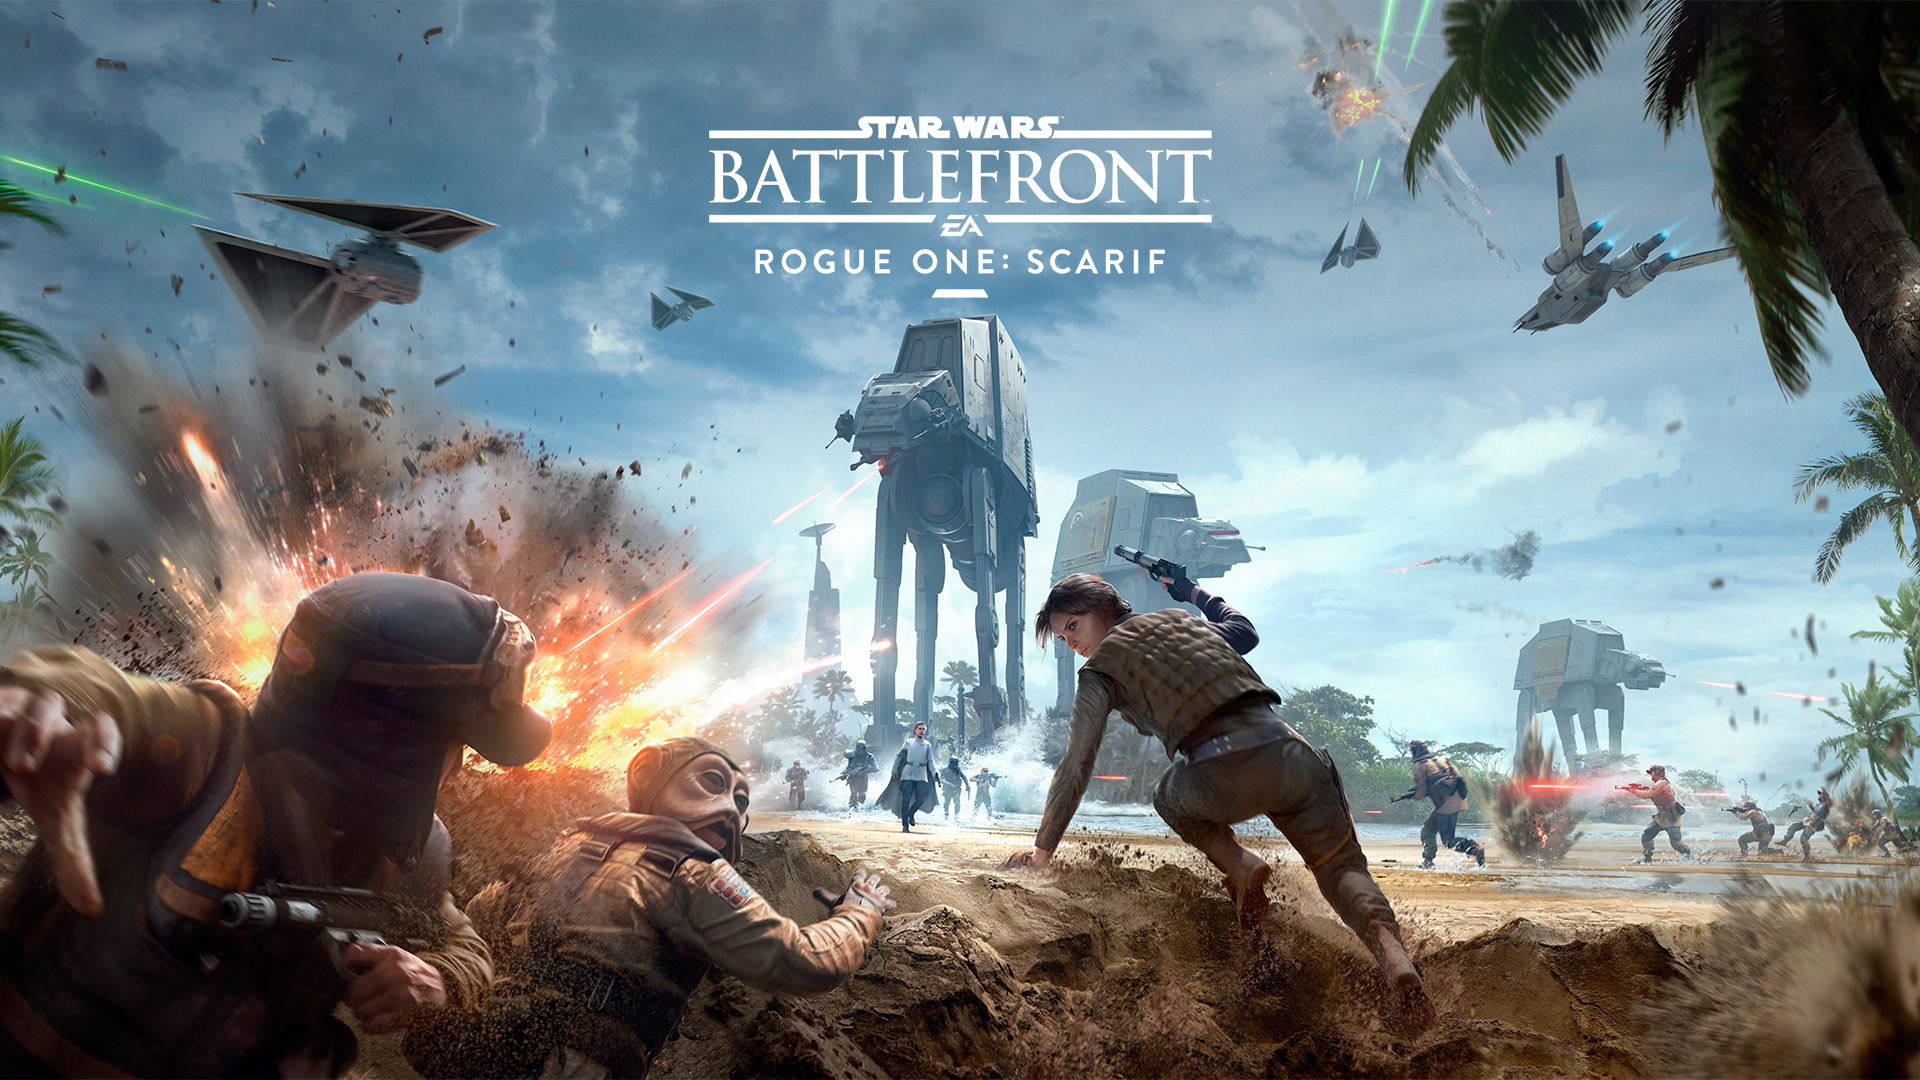 rogue-one-battlefront